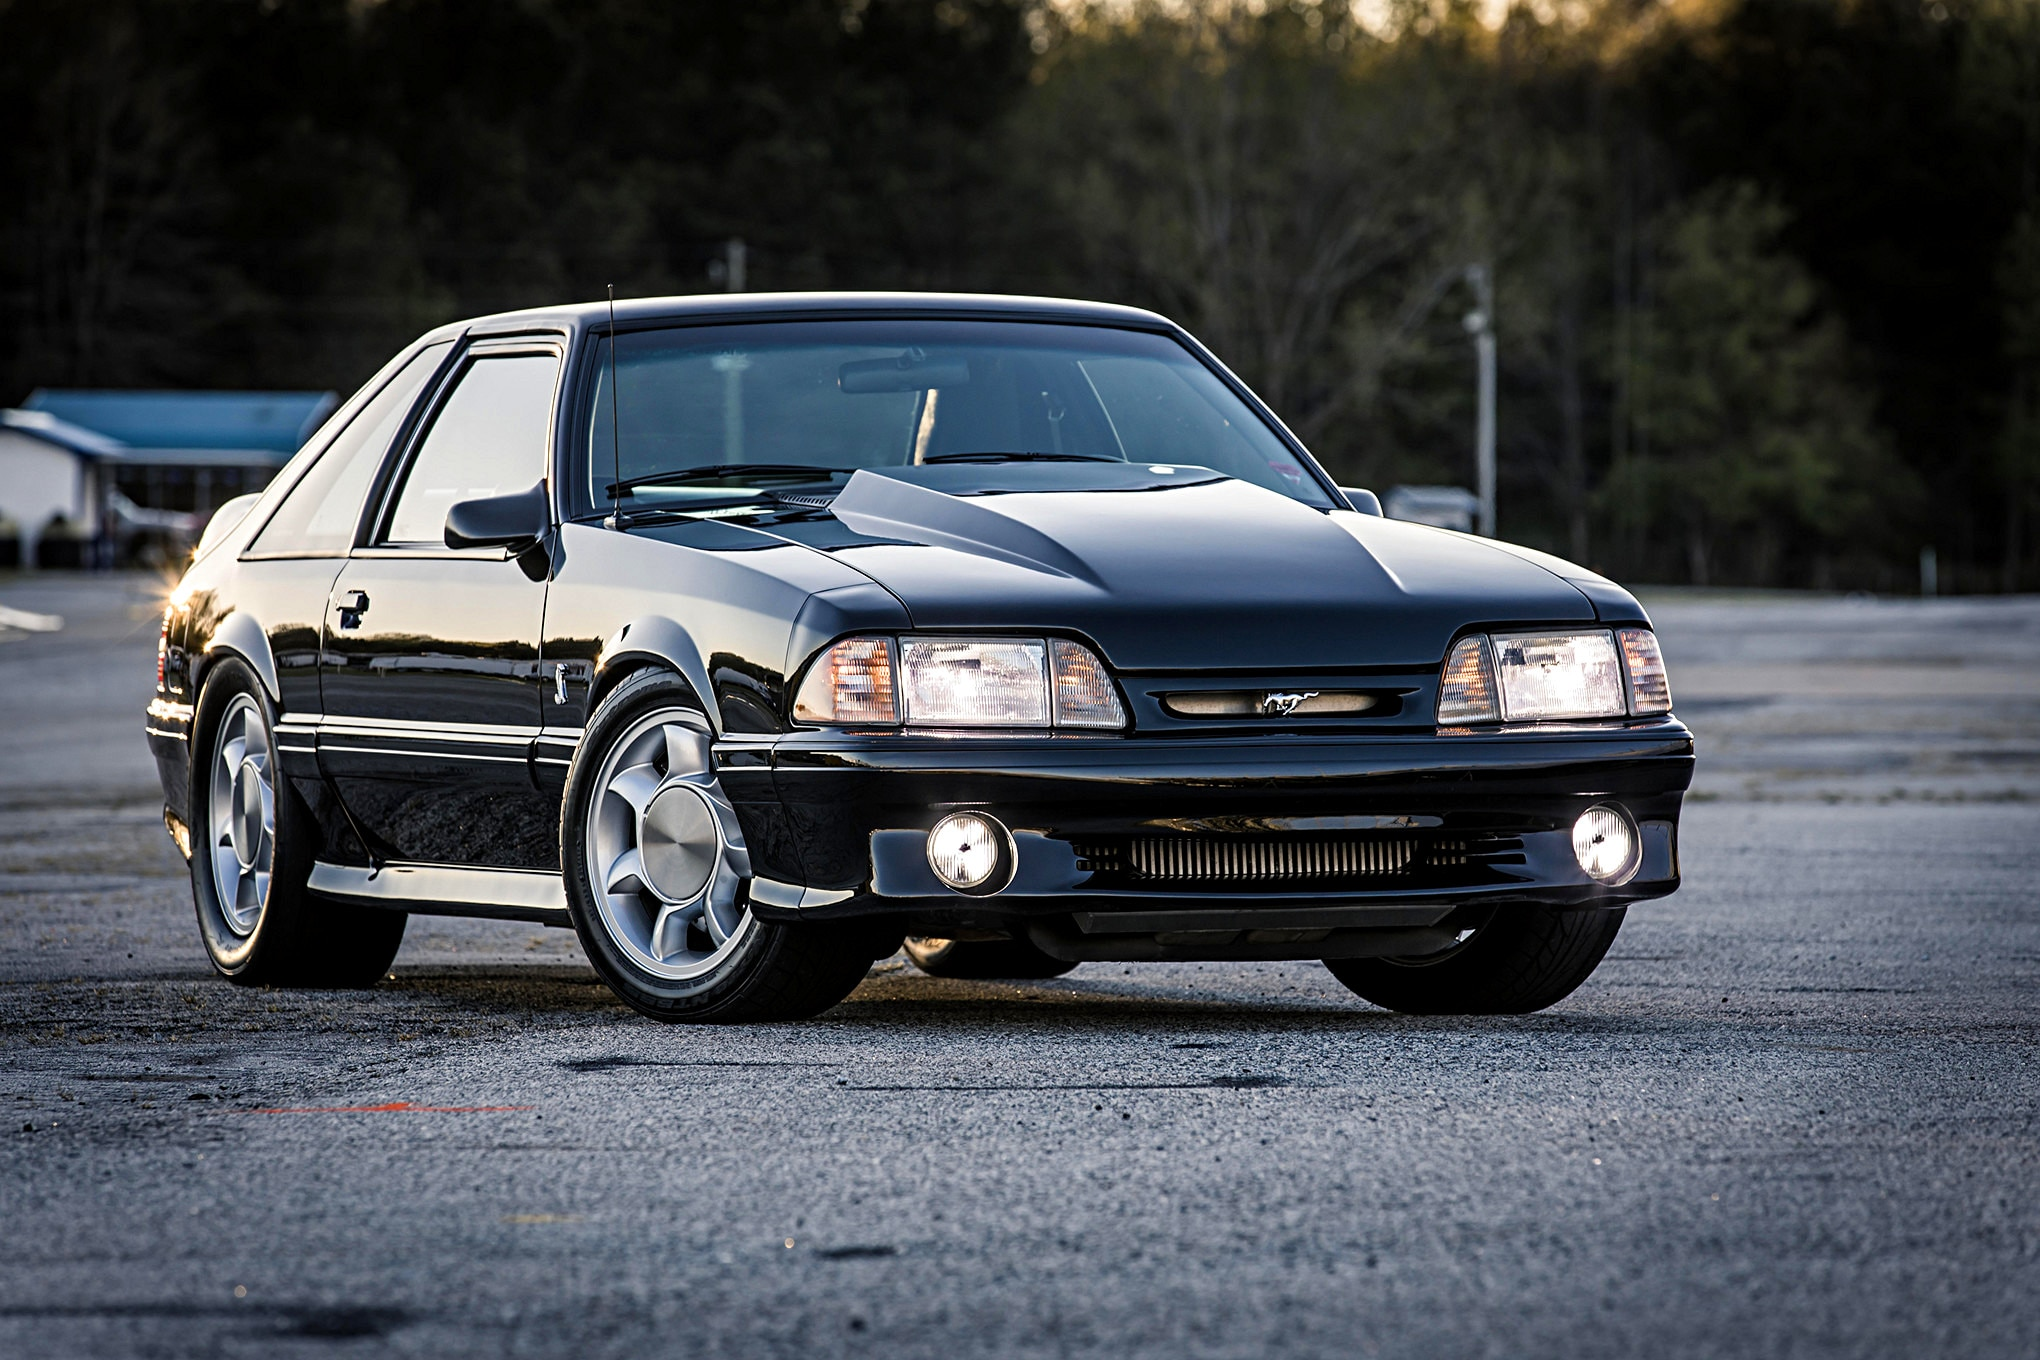 Brad Brand Fox Cobra Mustang Turbo 015